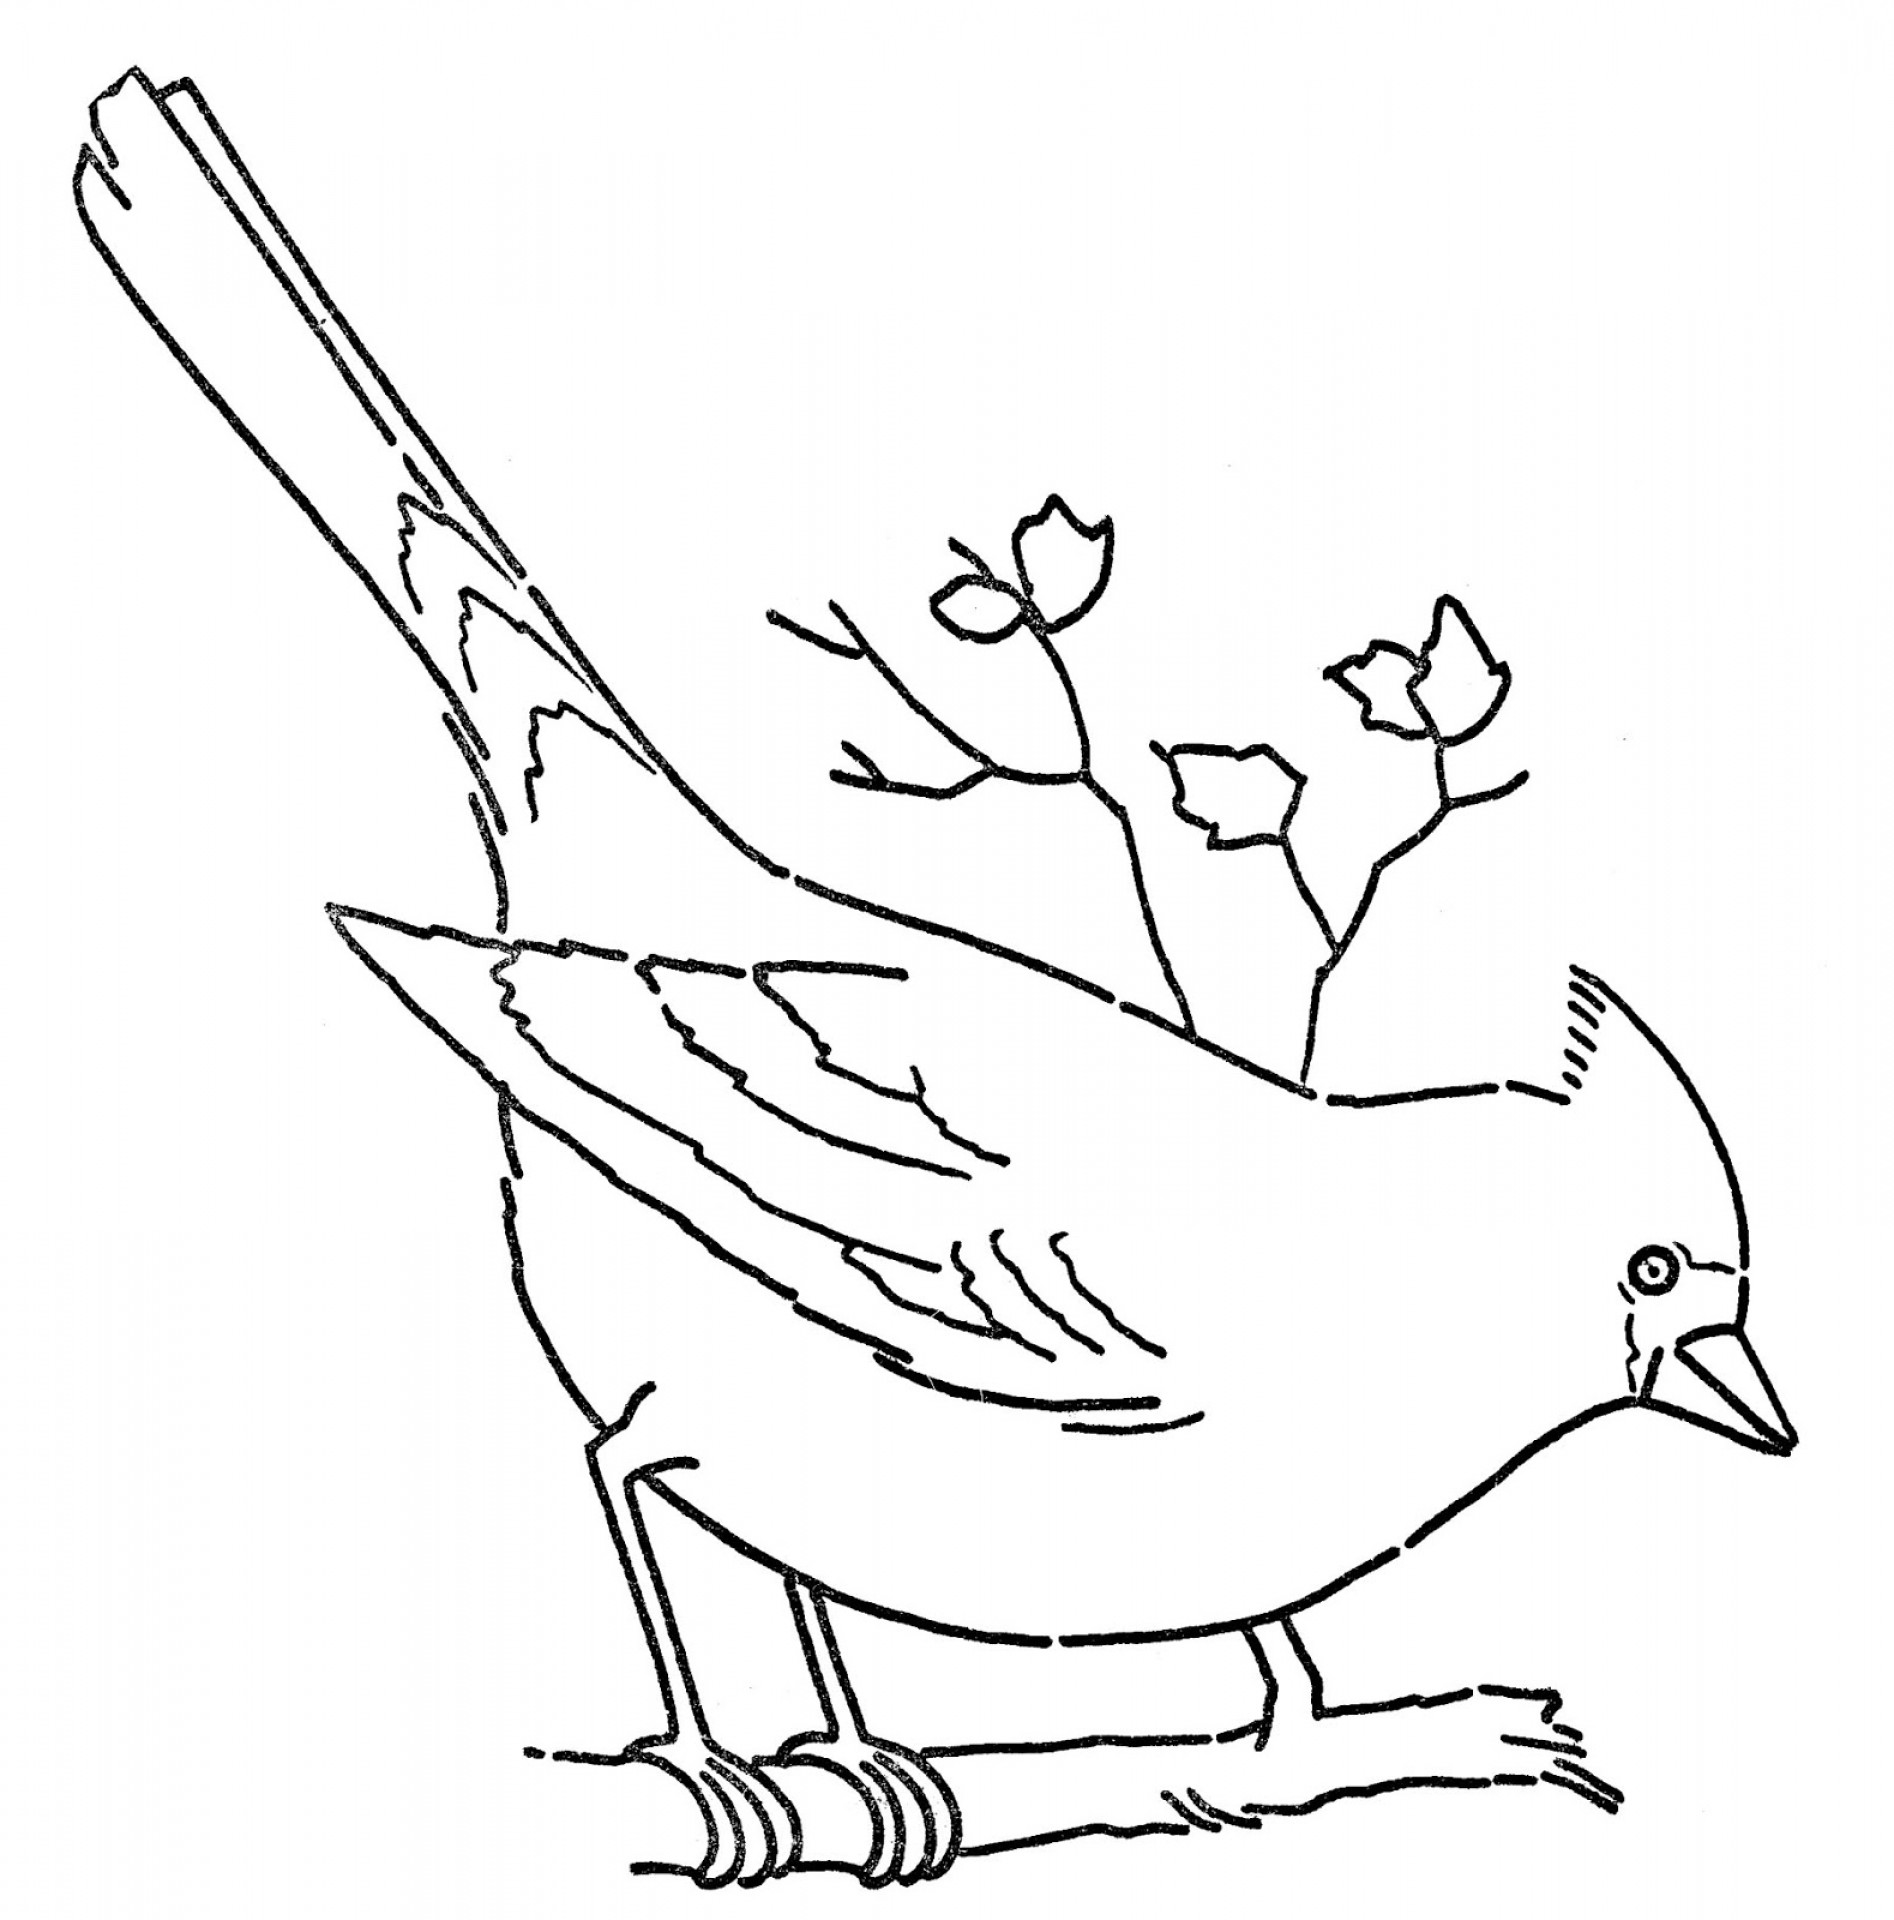 2013 St. Louis Cardinals Logo Vector: Line Art Coloring Page Cardinal On Branch